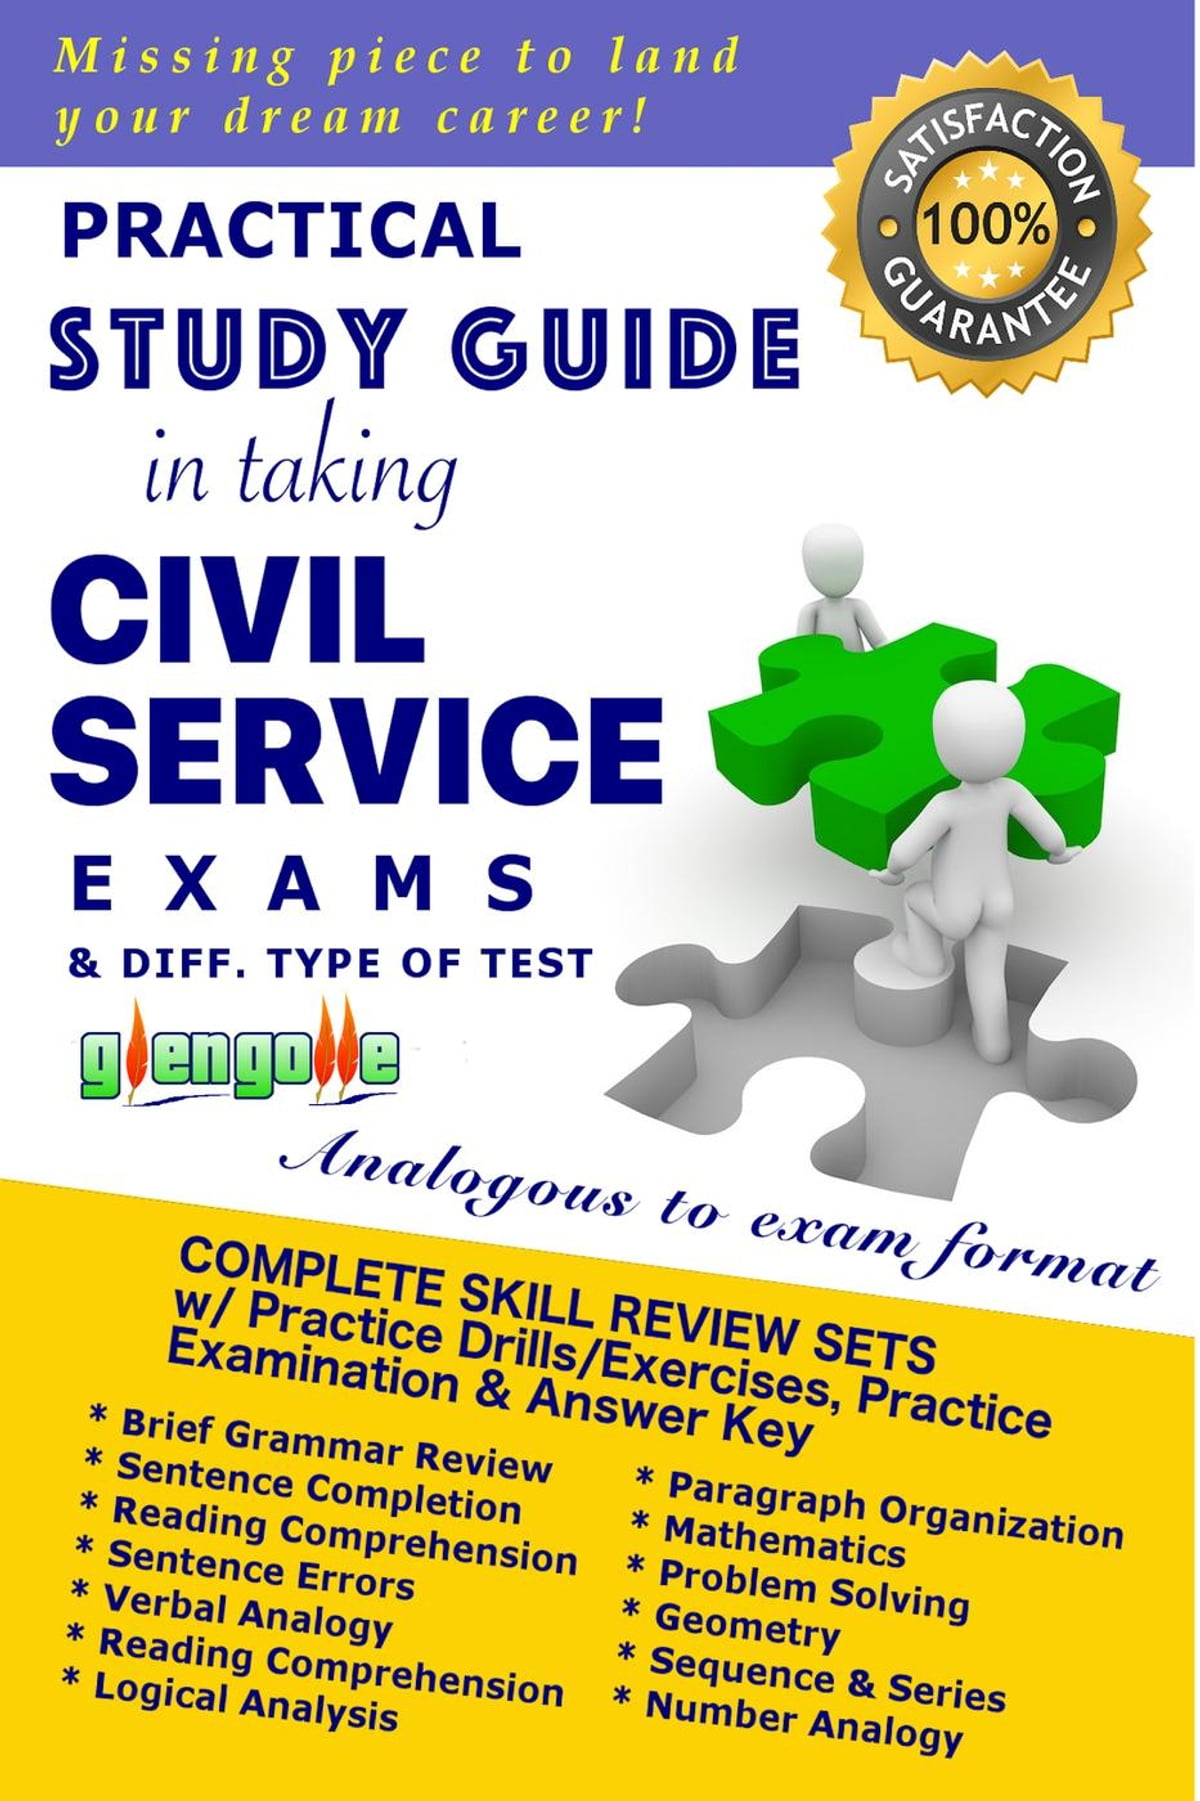 Practical Study Guide in Taking Civil Service Exam and Different Type of  Test eBook by Glen Golle - 9781311612809 | Rakuten Kobo